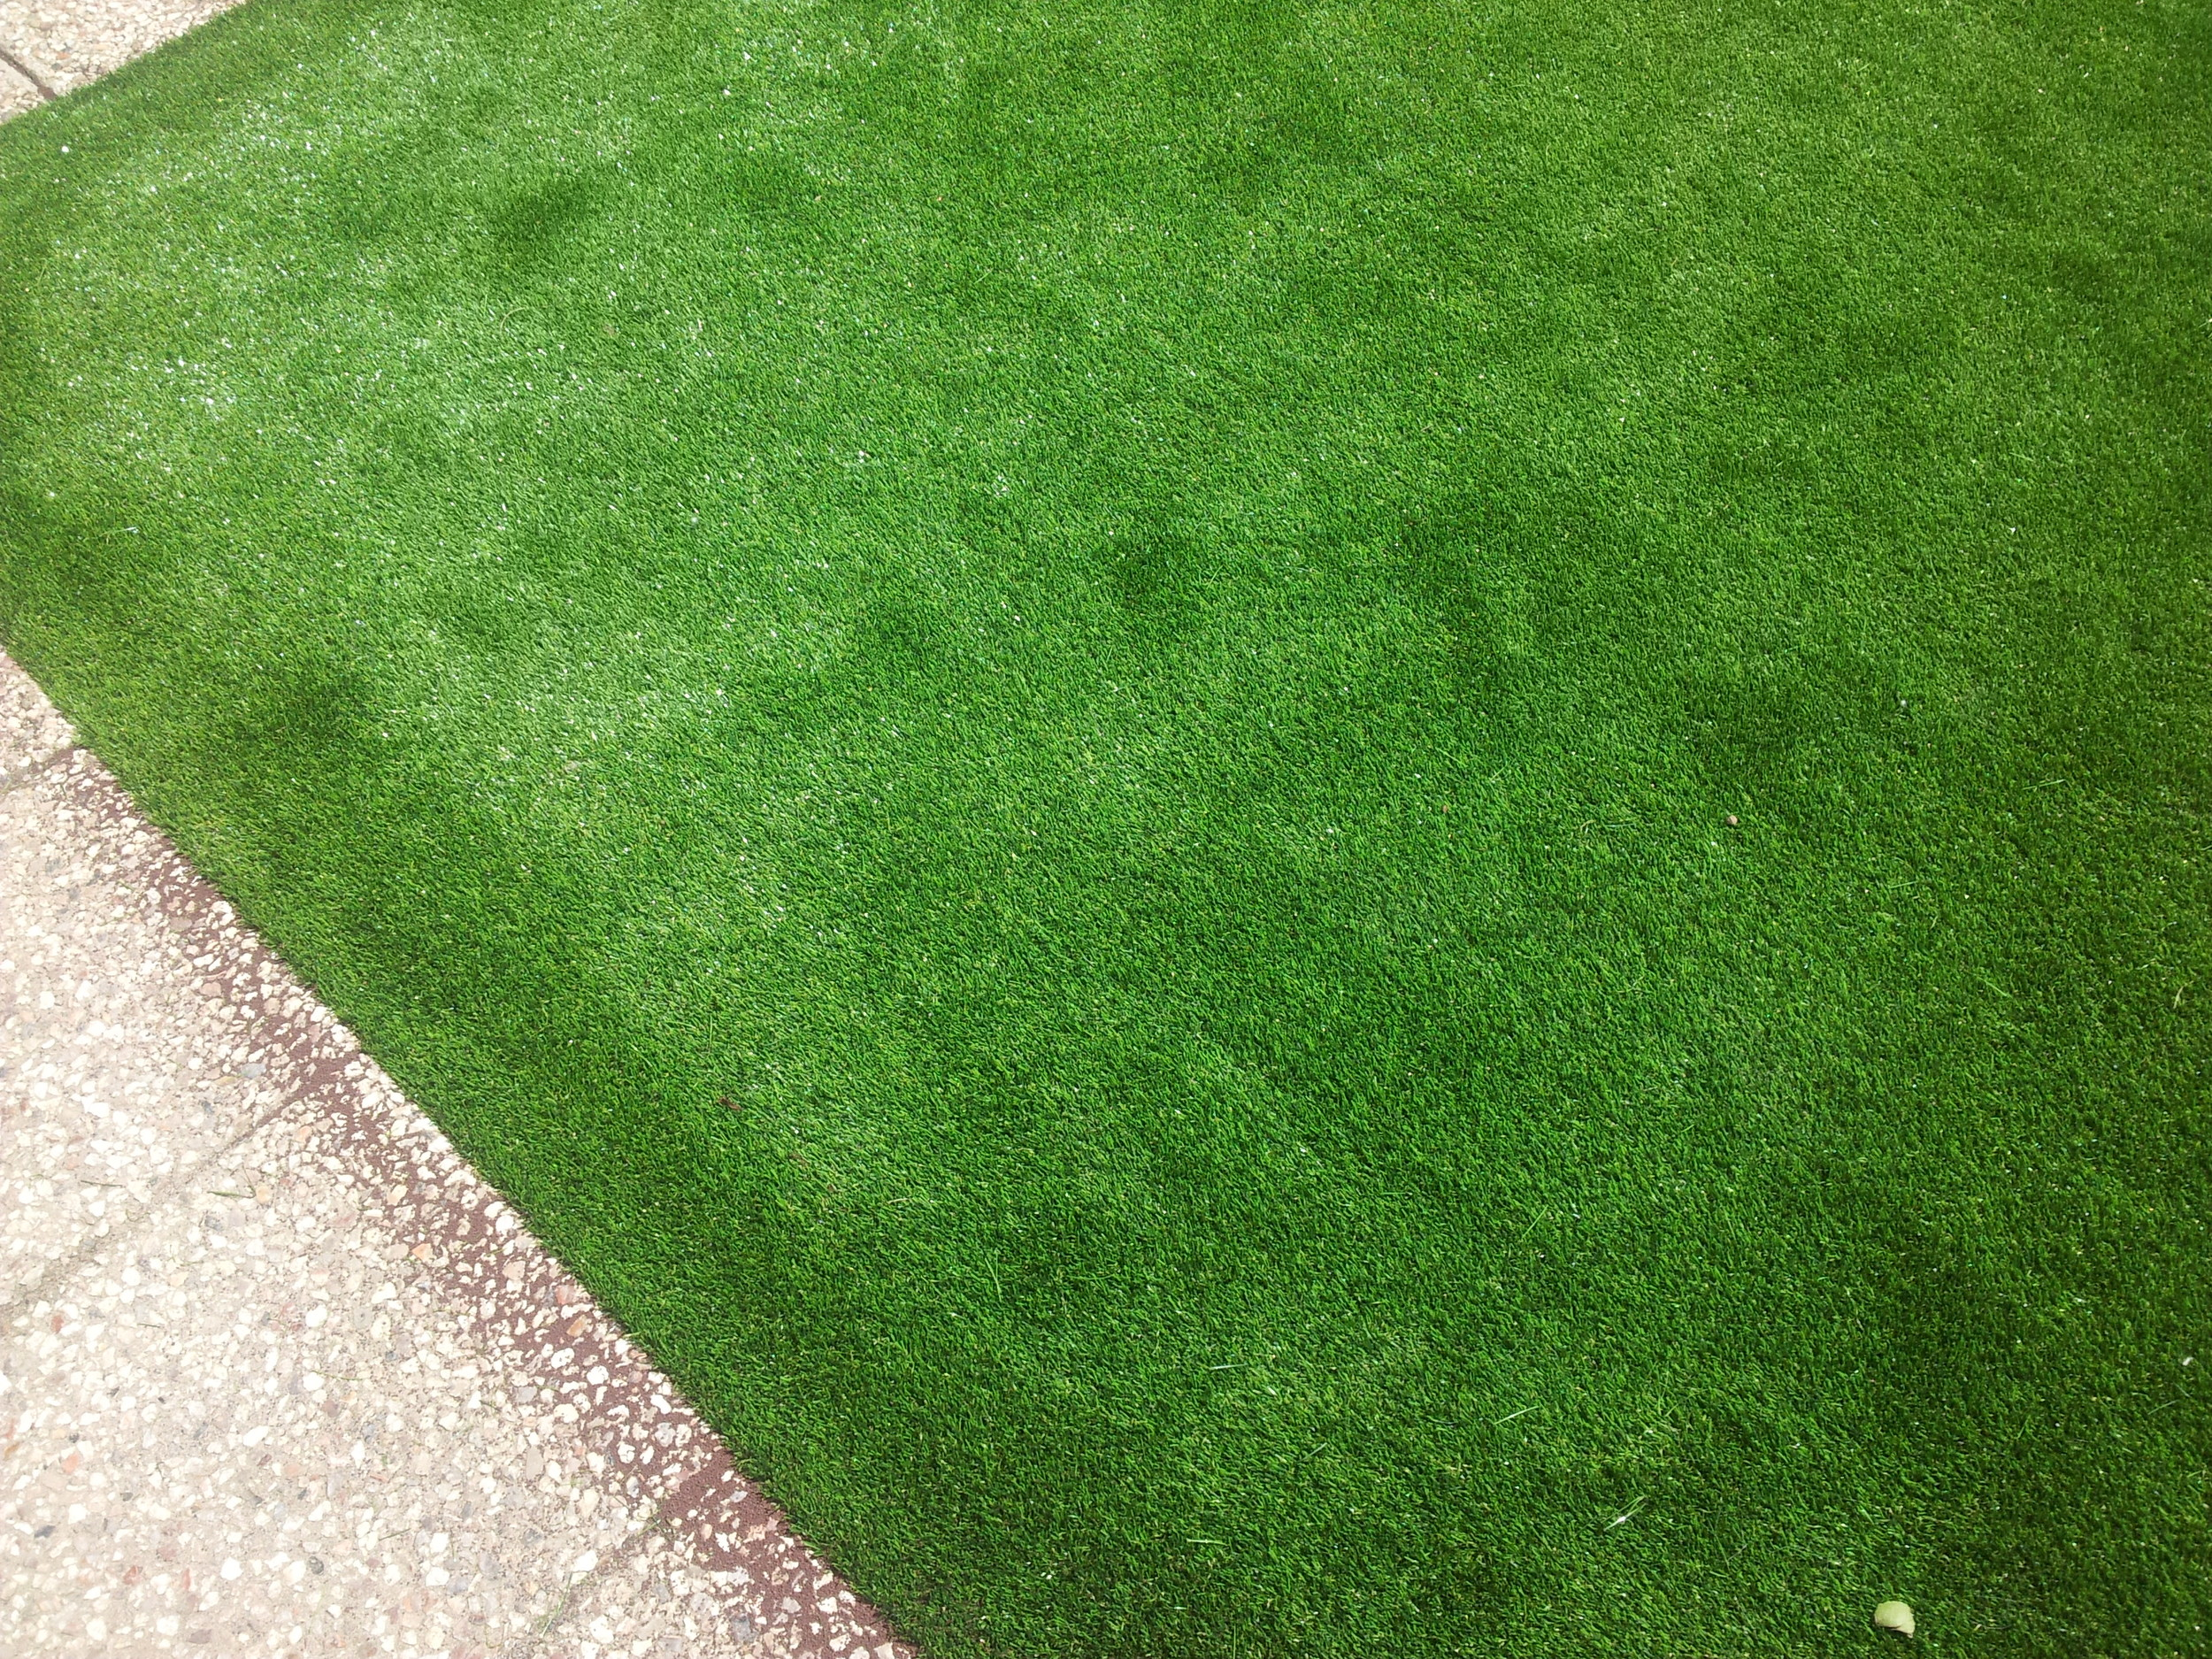 Artificial grass turf and landscape lawn